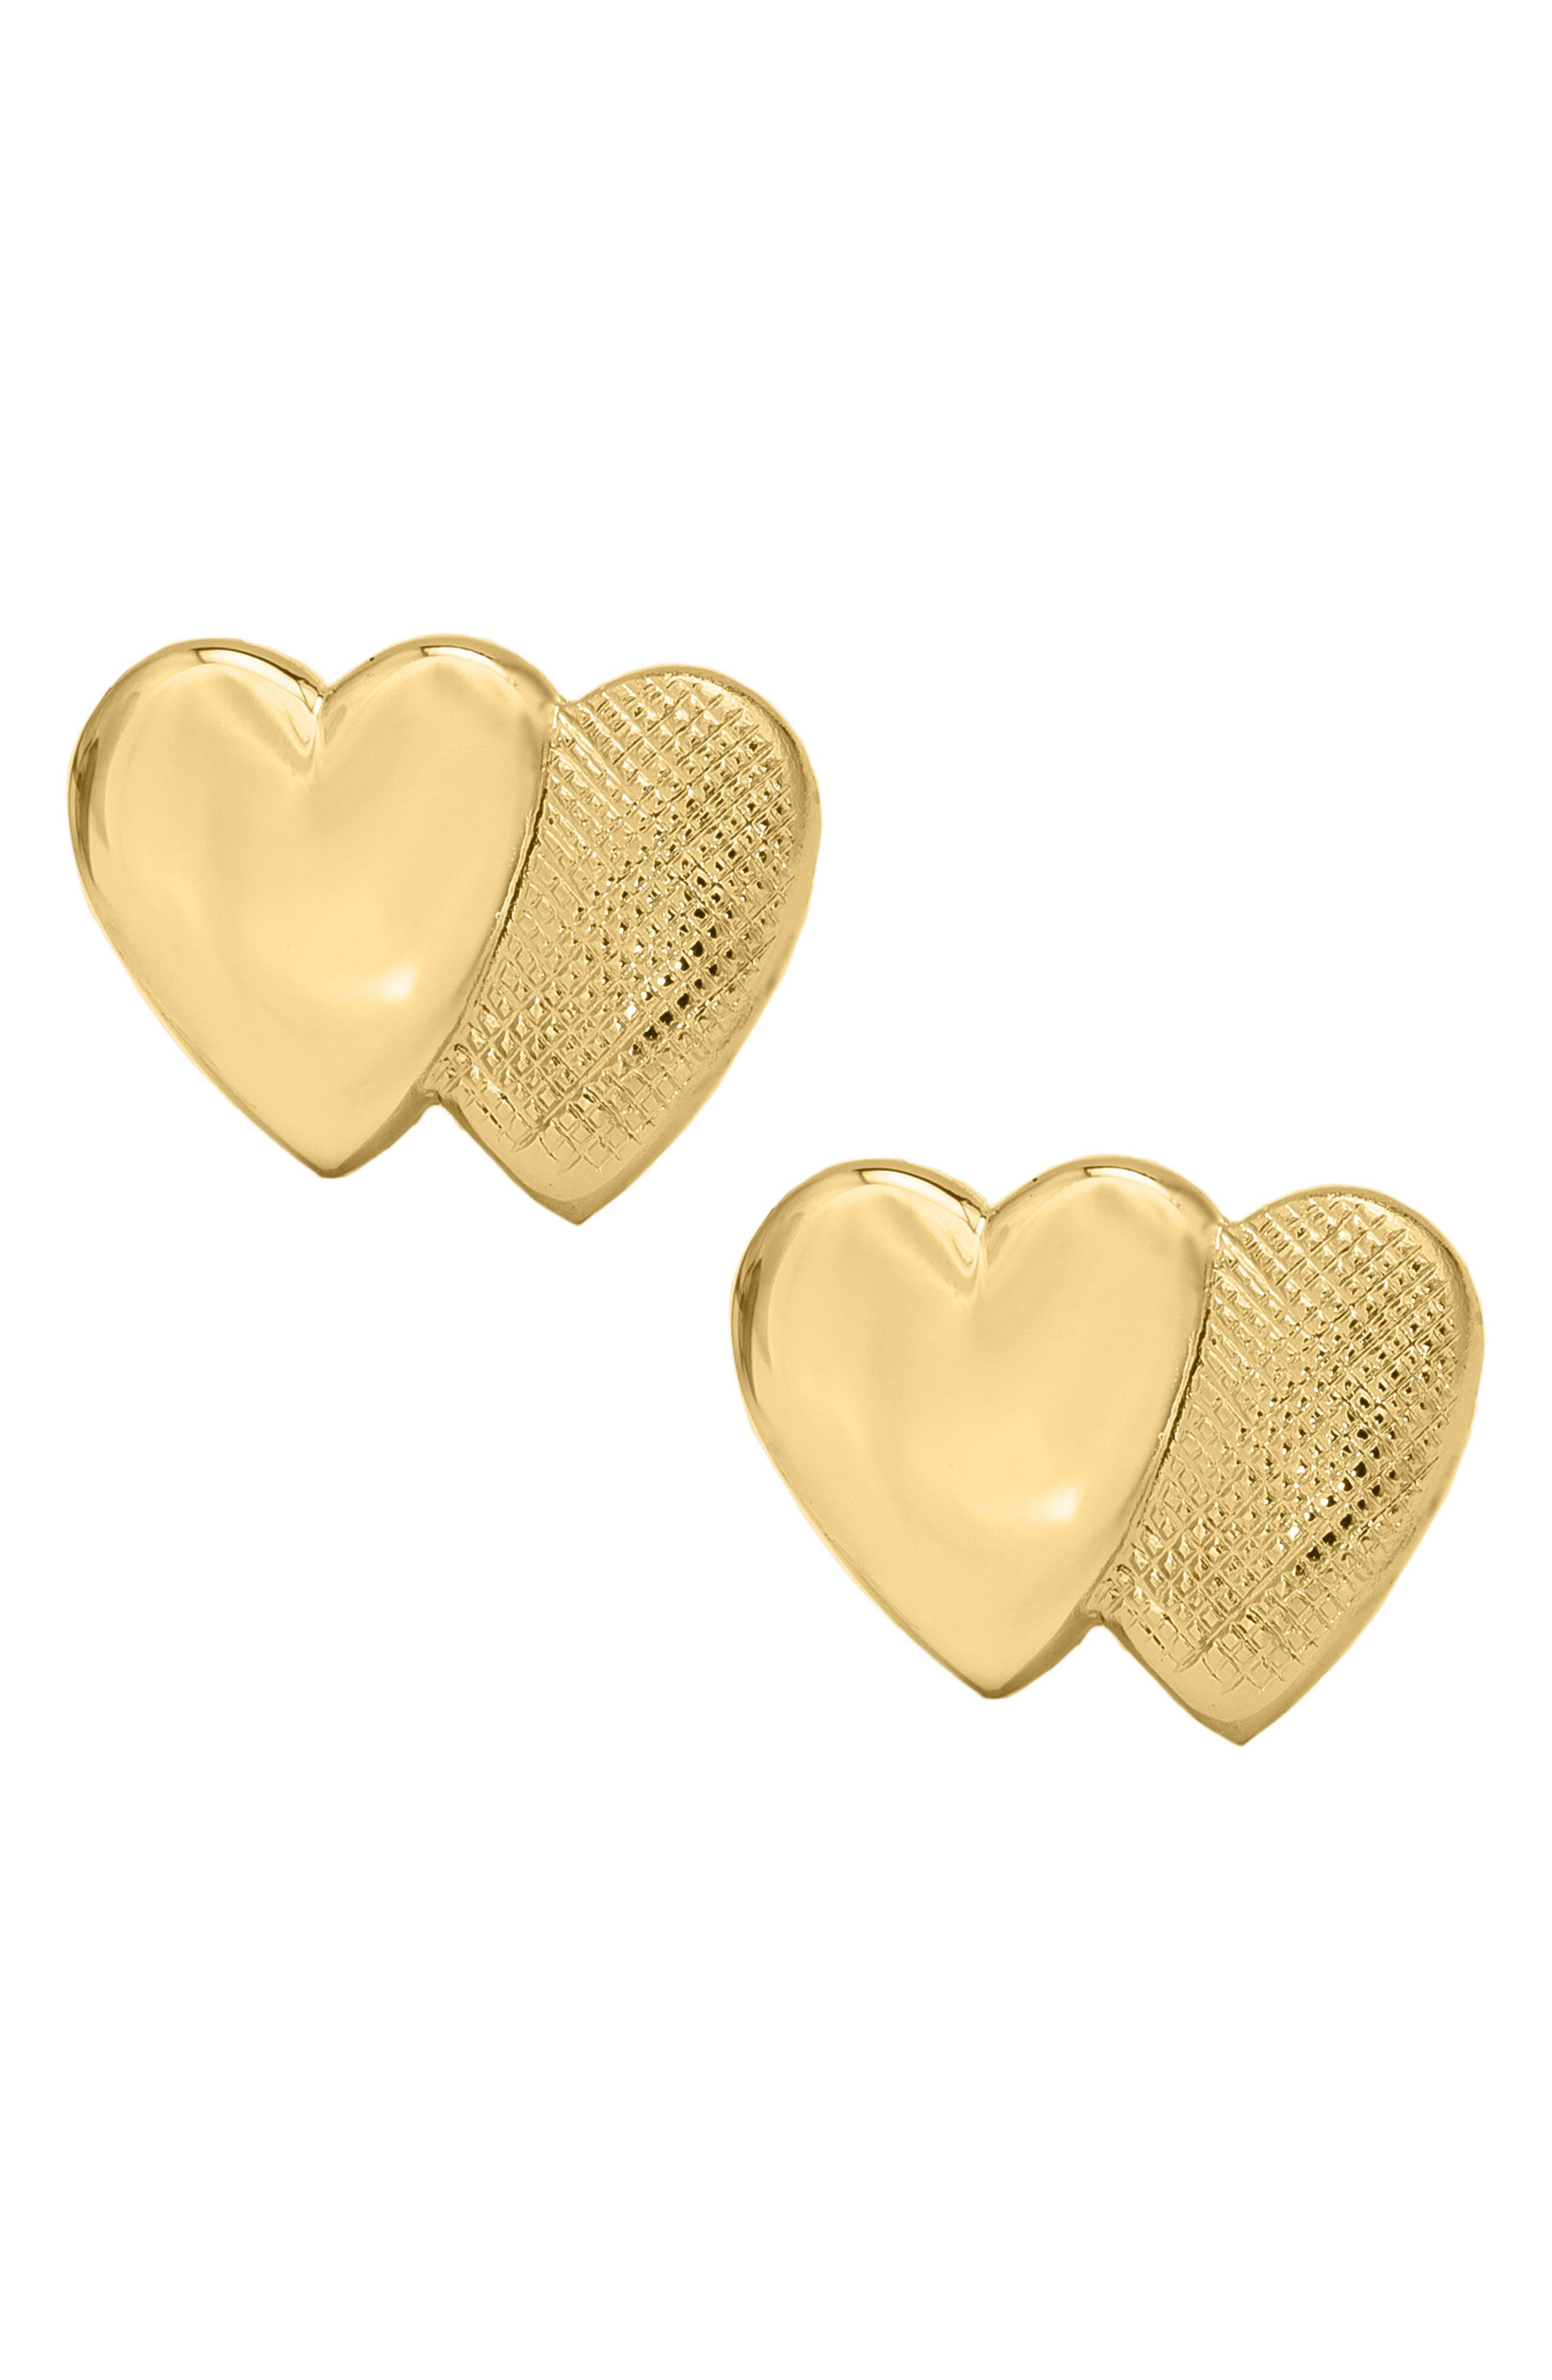 14k Gold Double Heart Earrings,                             Main thumbnail 1, color,                             GOLD